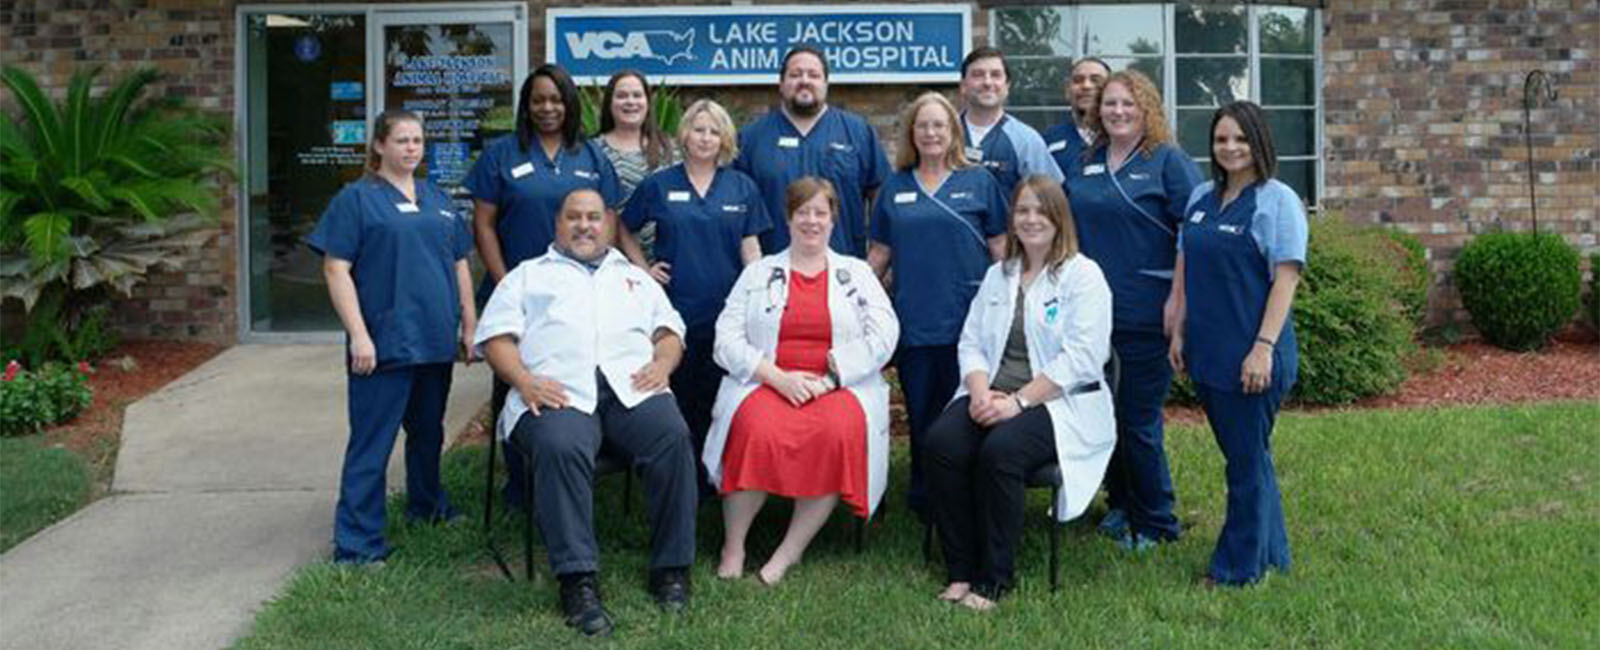 Homepage Team Picture of VCA Lake Jackson Animal Hospital